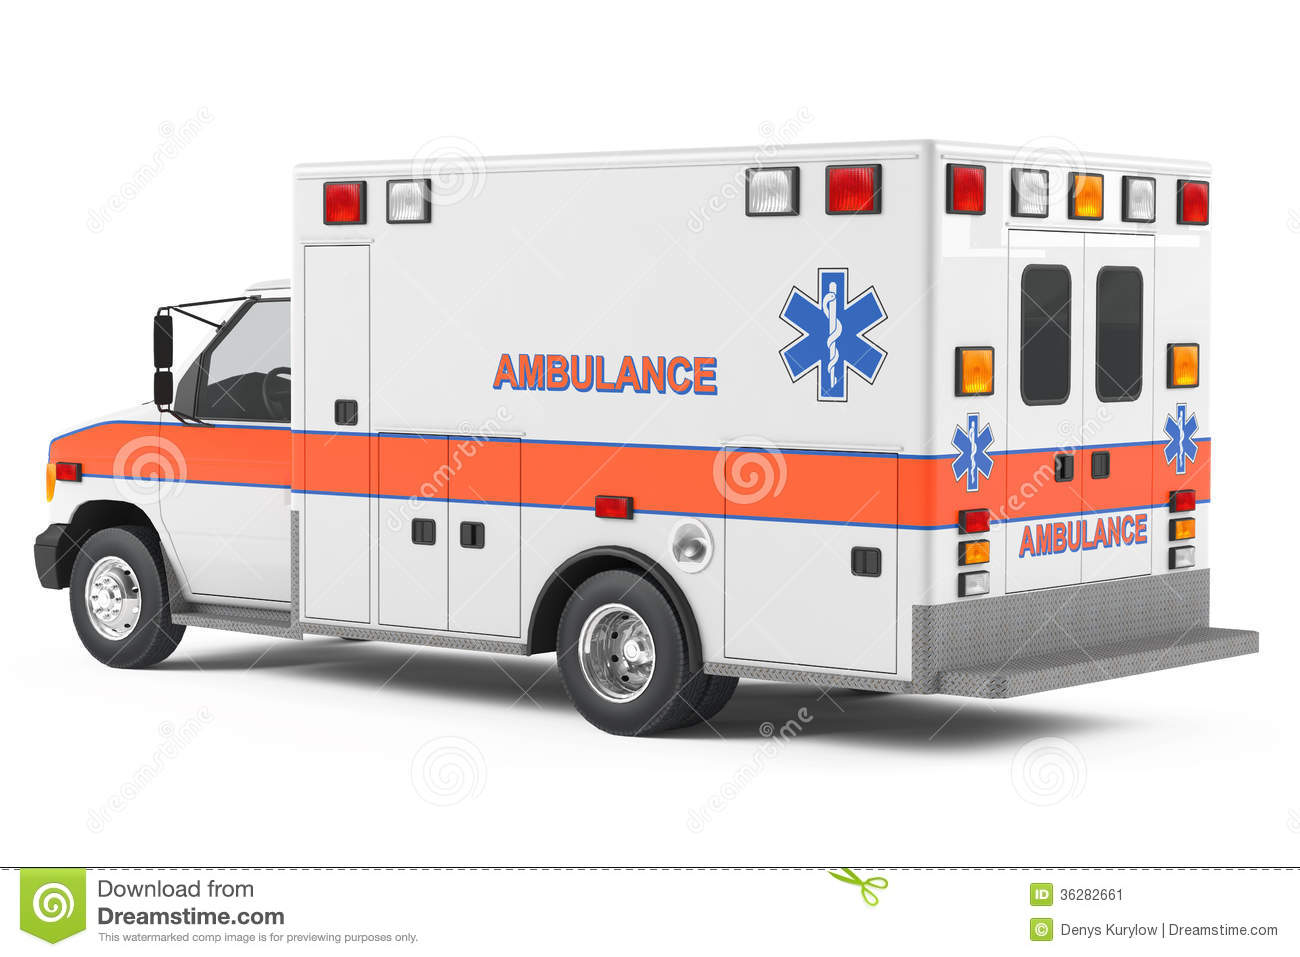 Ambulance Car Back Stock Image - Image: 36282661